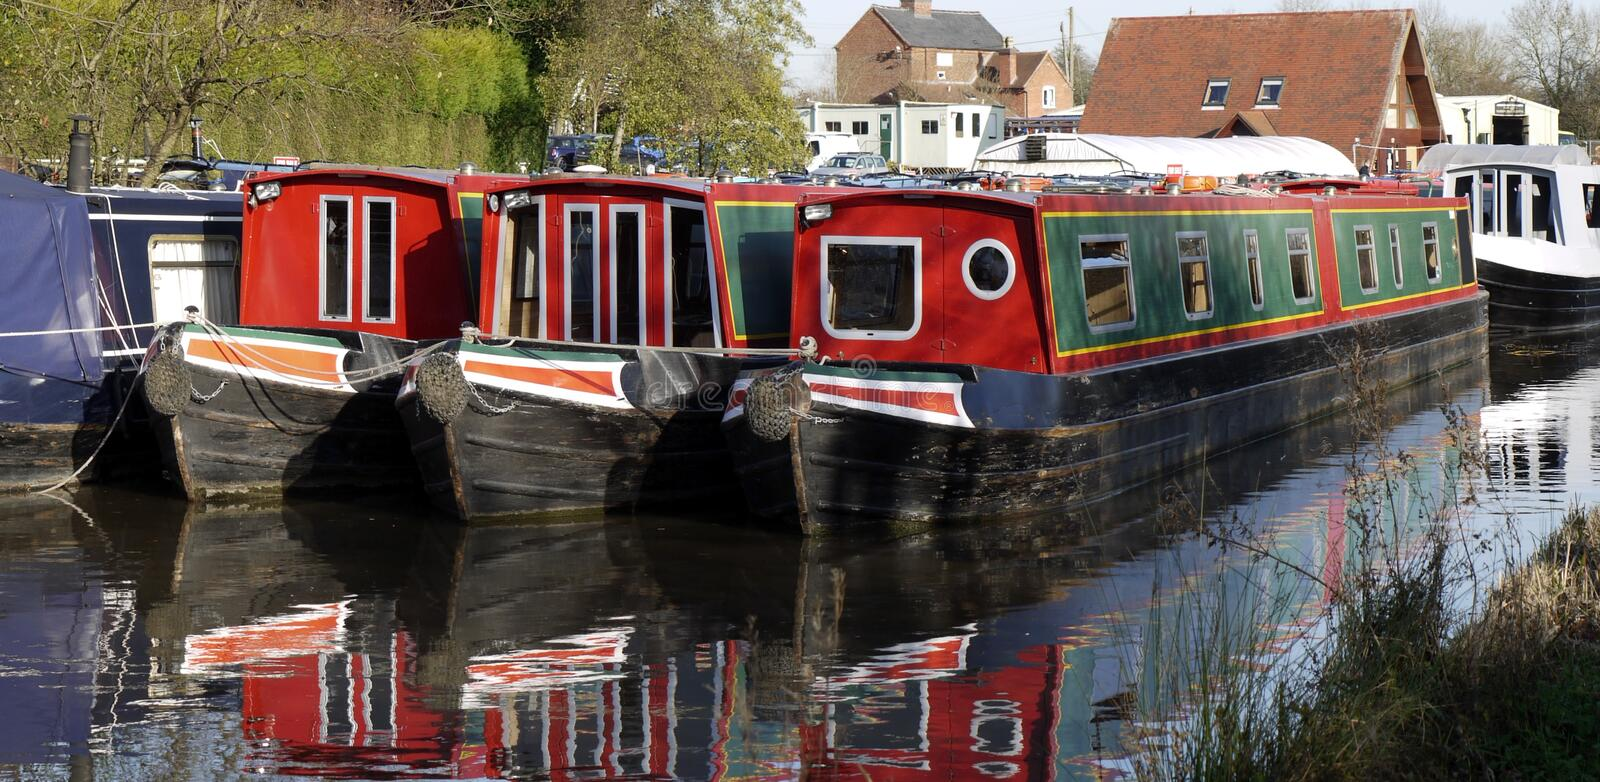 canal images stock